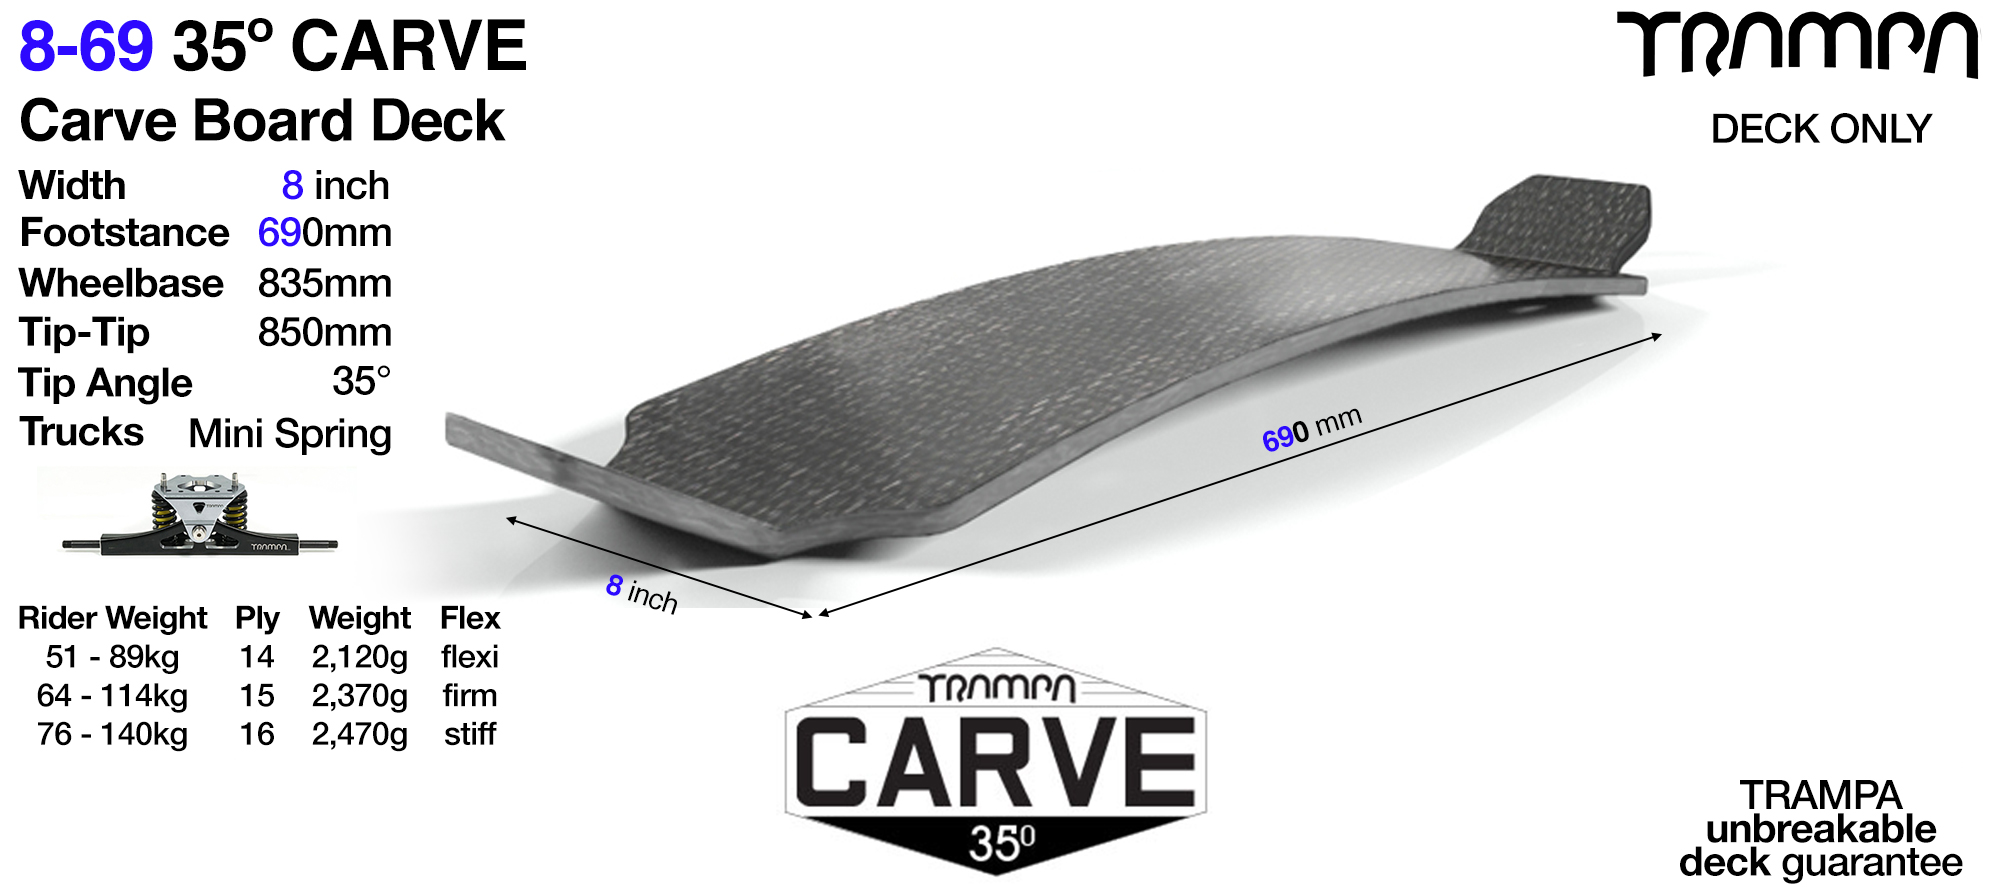 35° Original 9-69 Carve Deck